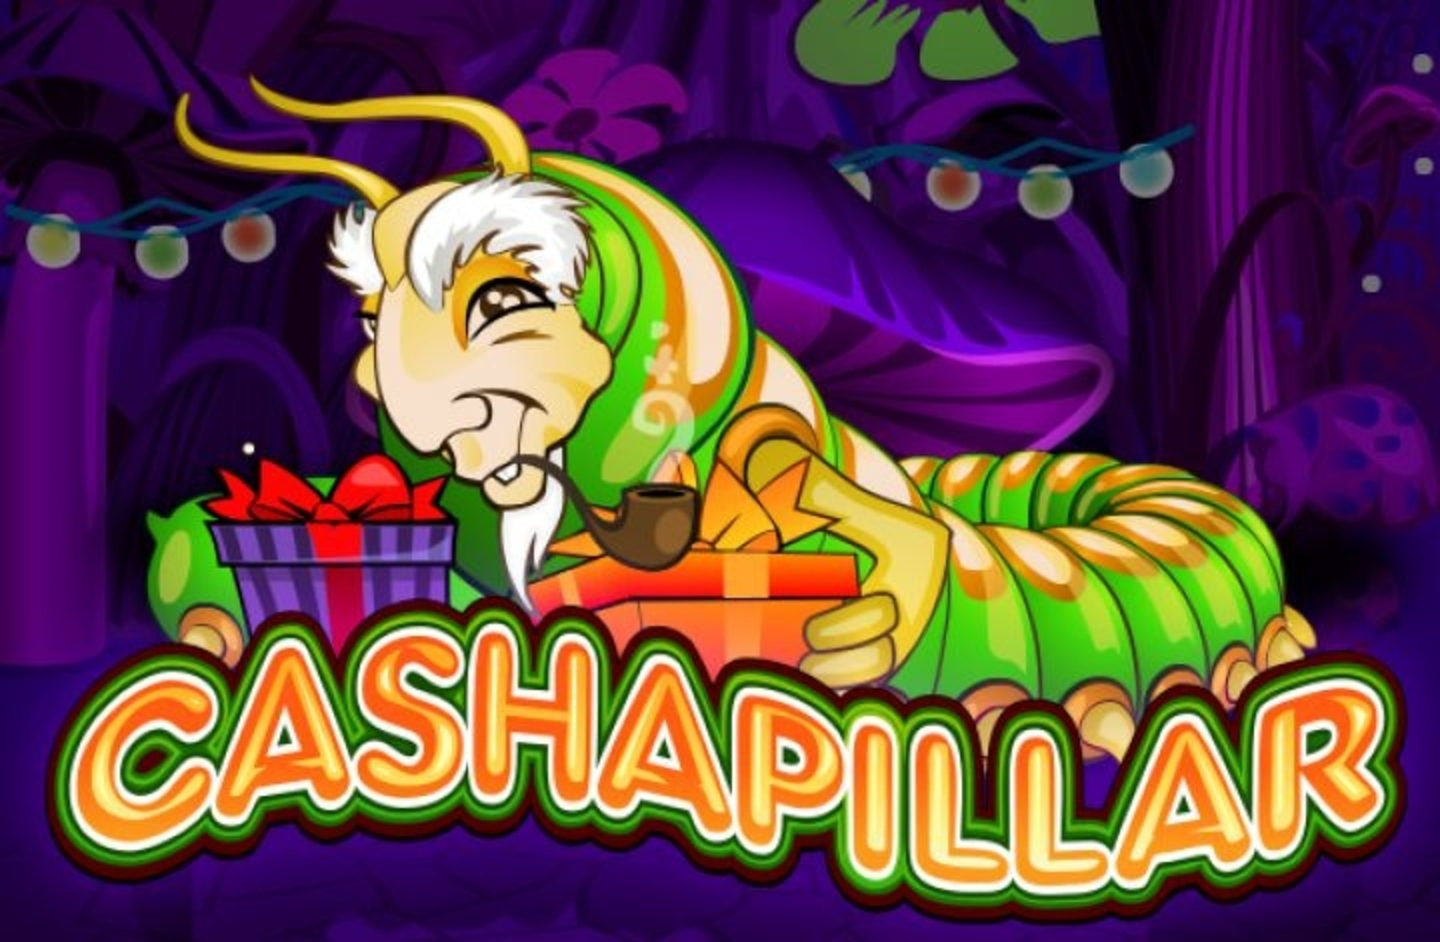 The Cashapillar Online Slot Demo Game by Microgaming